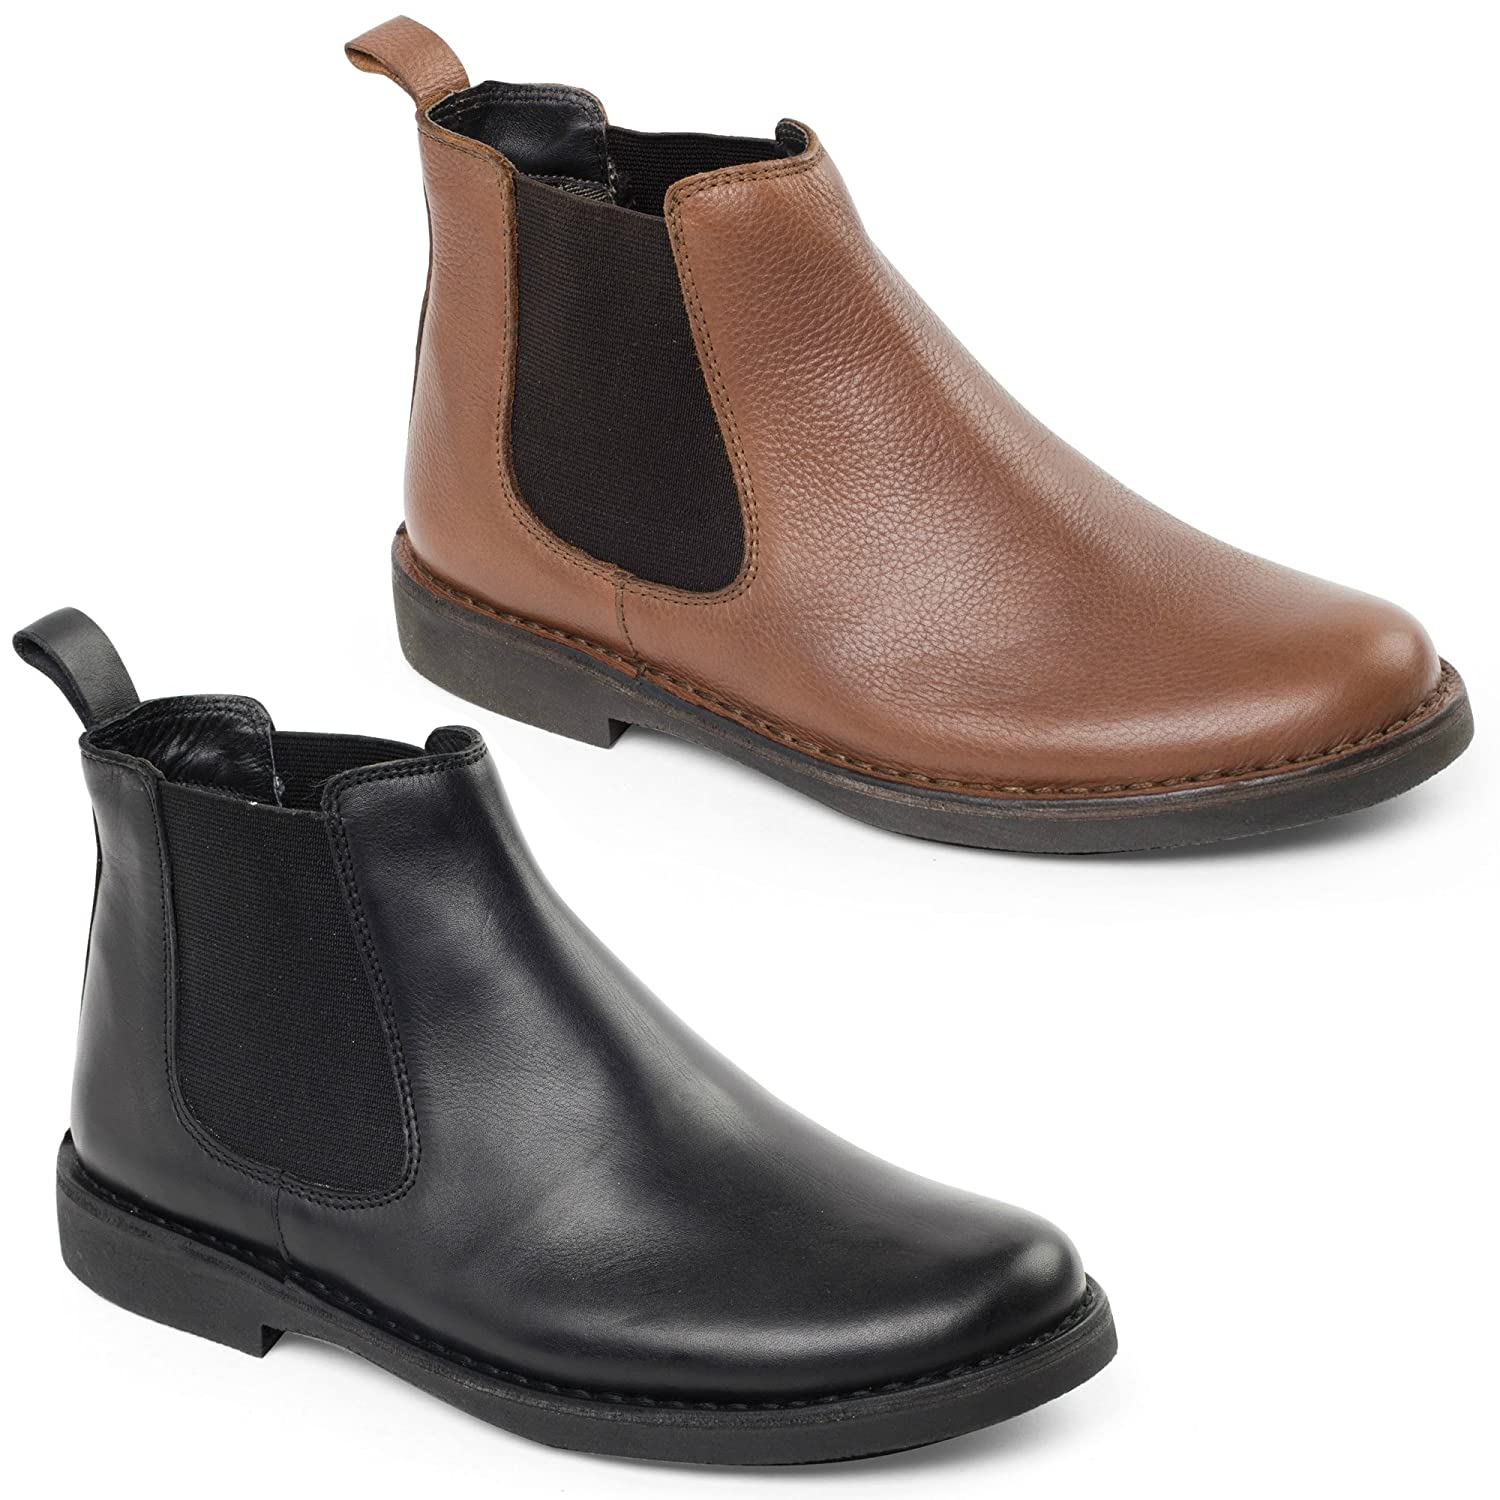 7112d515530 Padders JERRY Mens Leather Wide Dealer Boots Black UK 7  Amazon.co.uk  Shoes    Bags